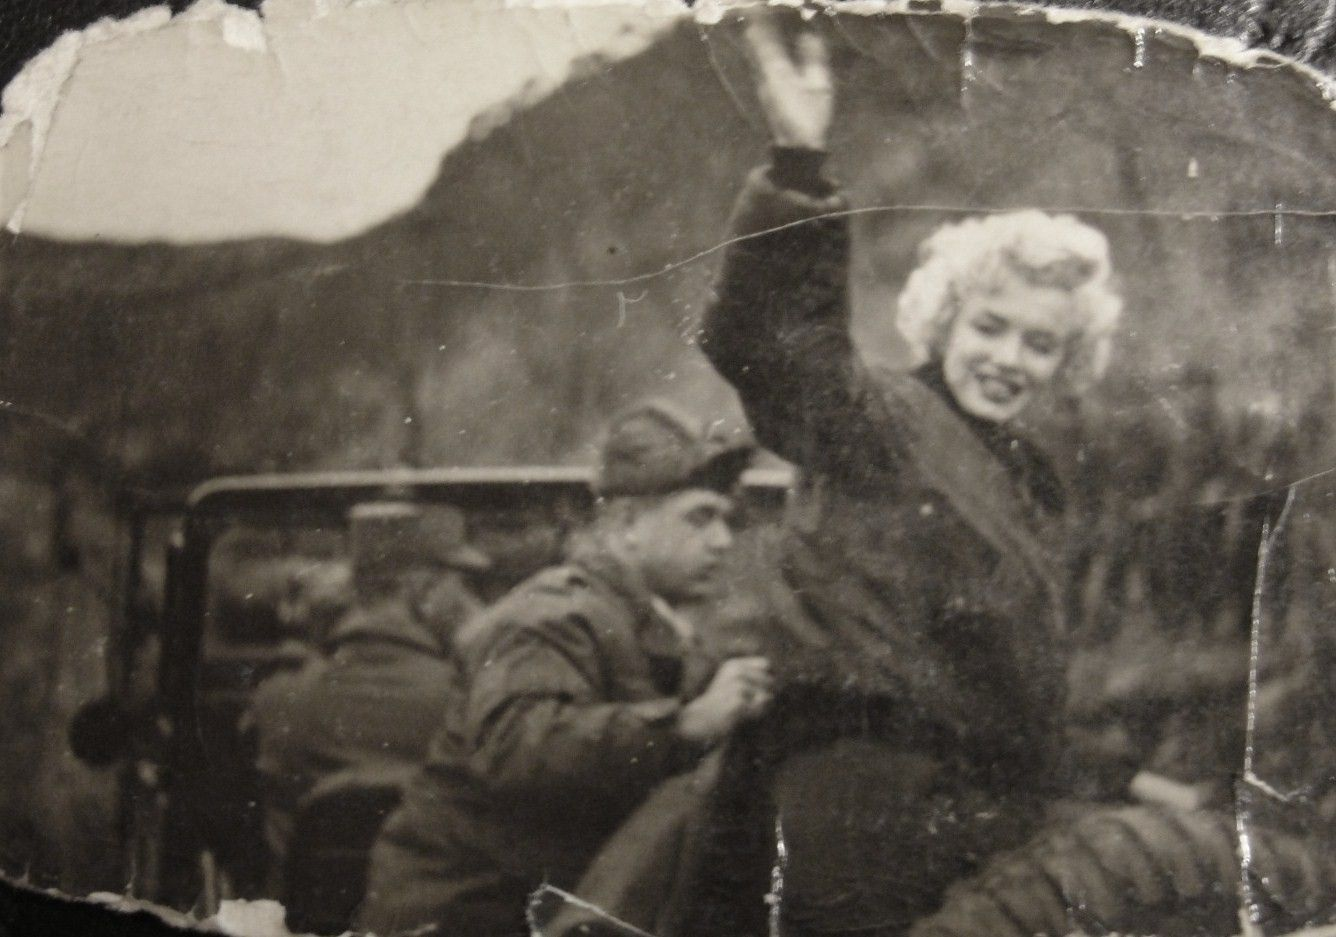 1954-02-korea-army_jacket-jeep-041-1